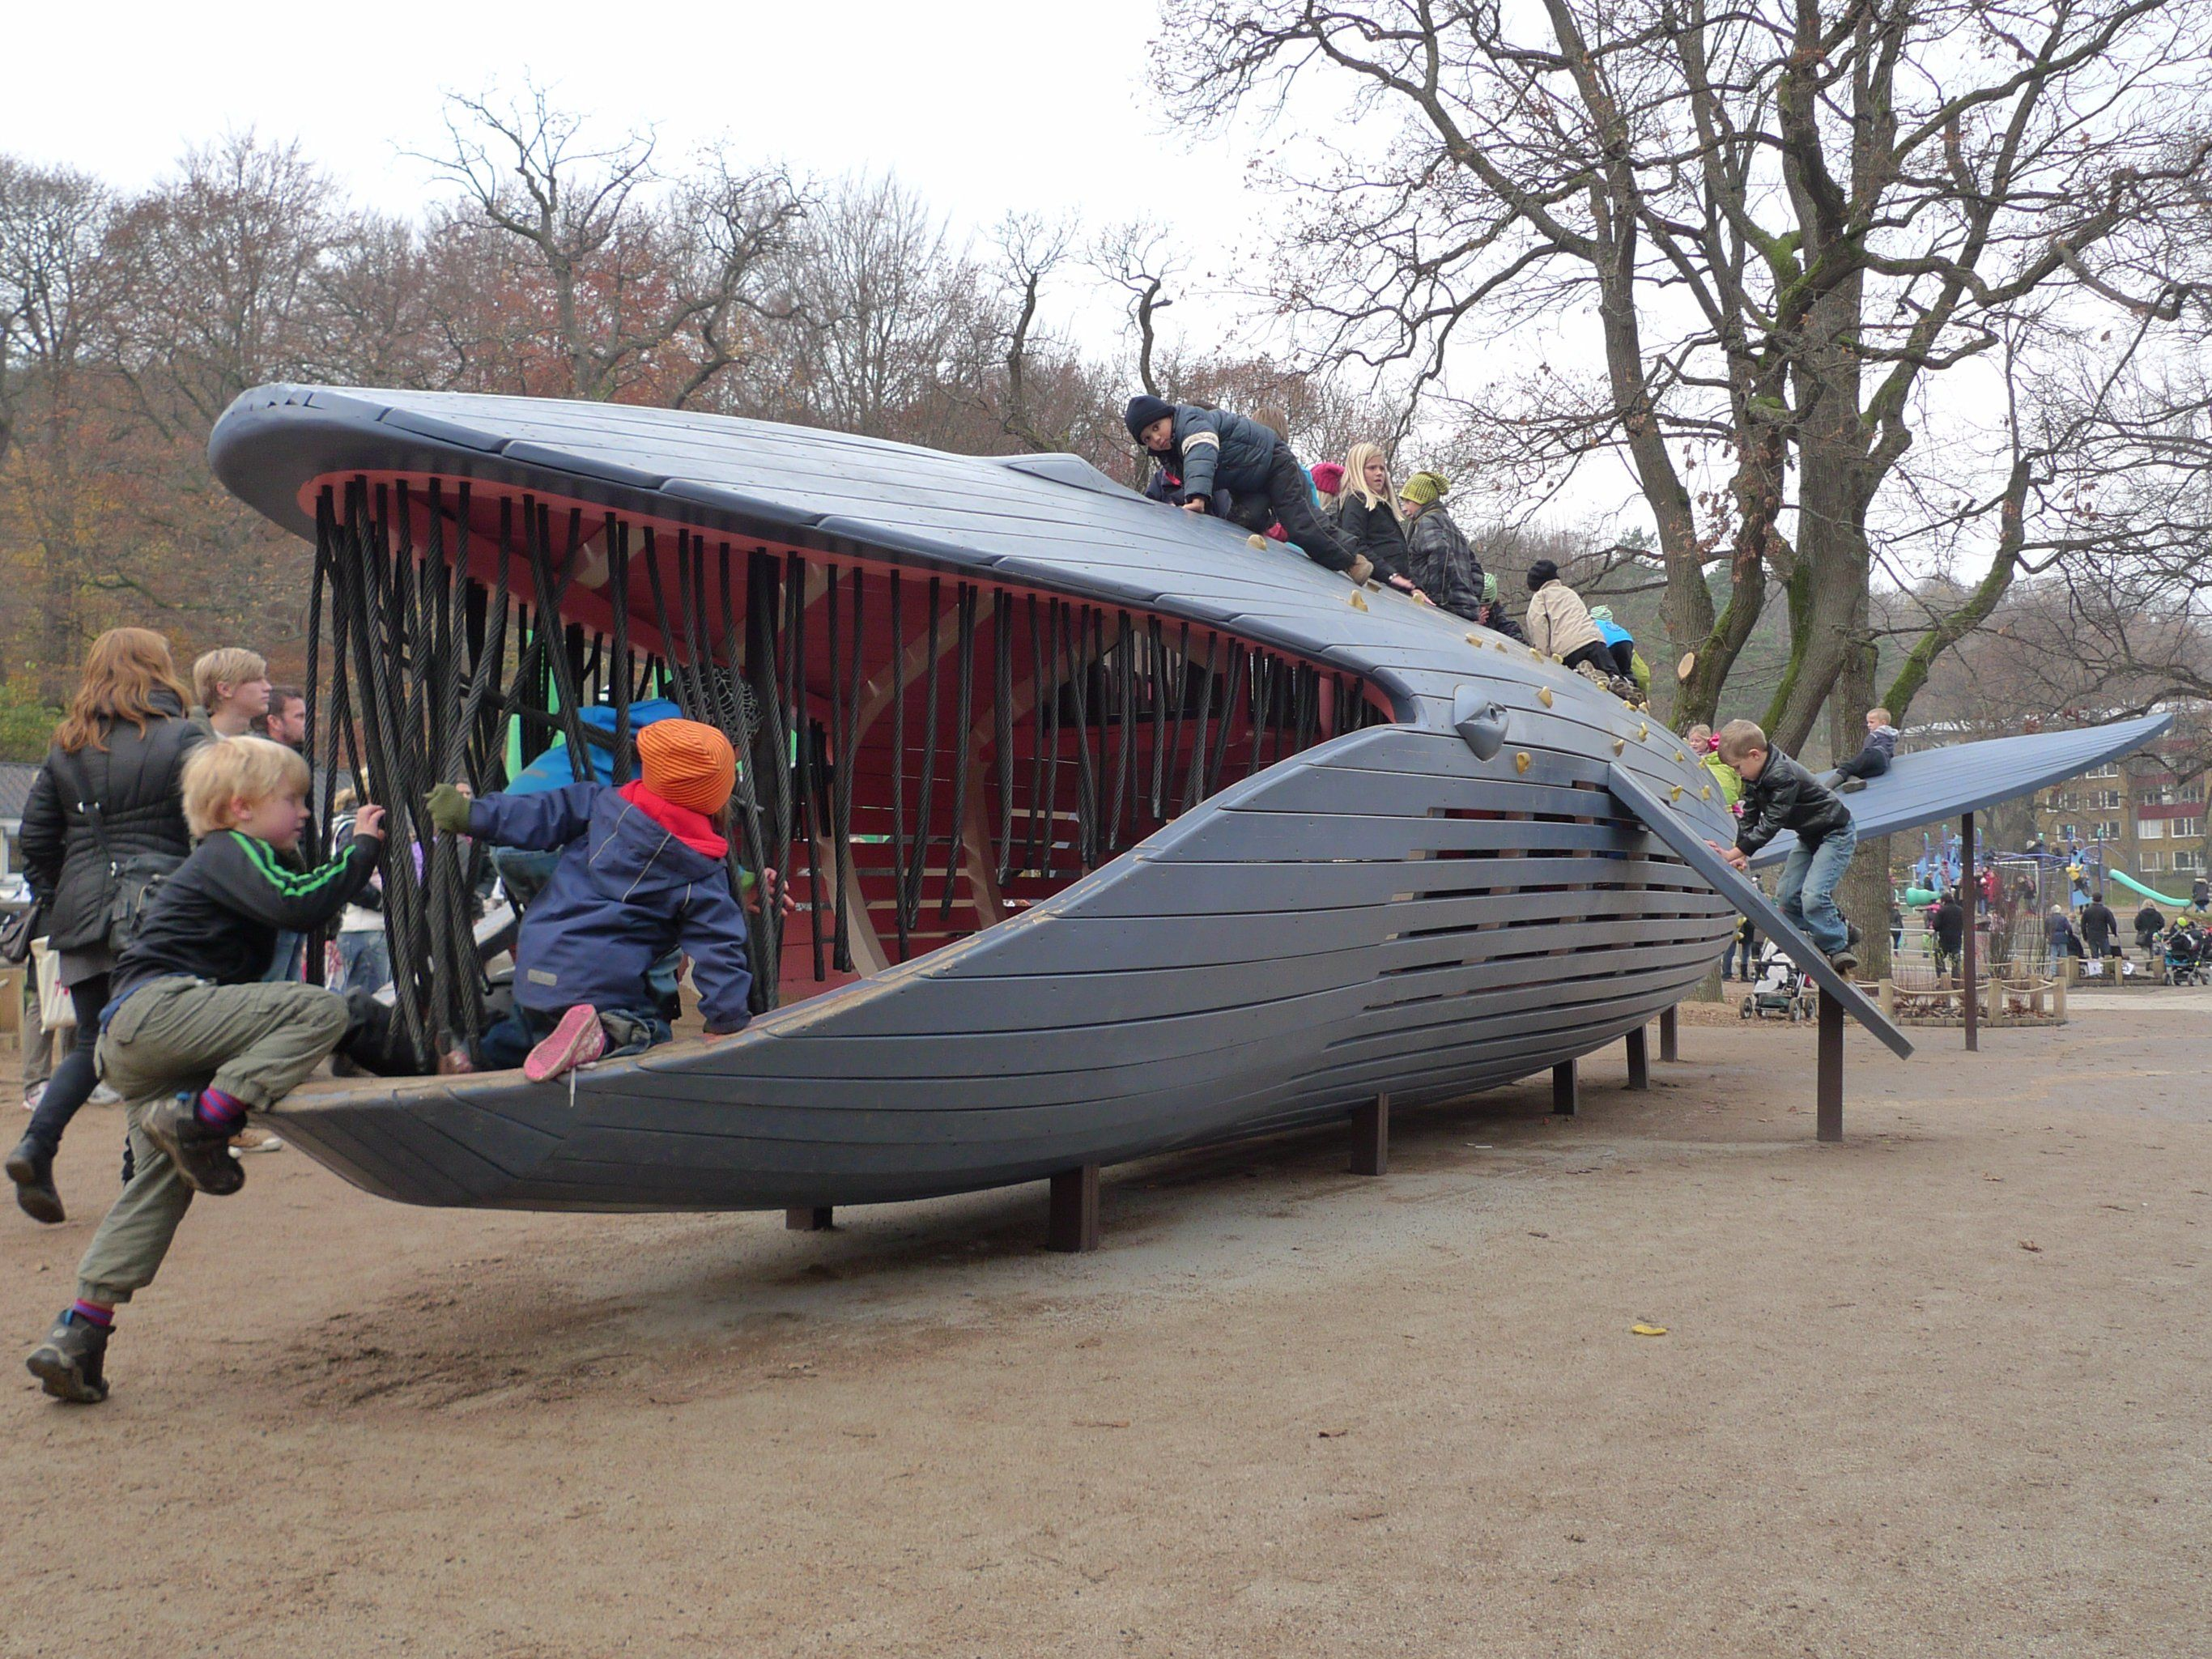 A Danish Company Creates The Best Playgrounds The World Has Ever - 15 of the worlds coolest playgrounds